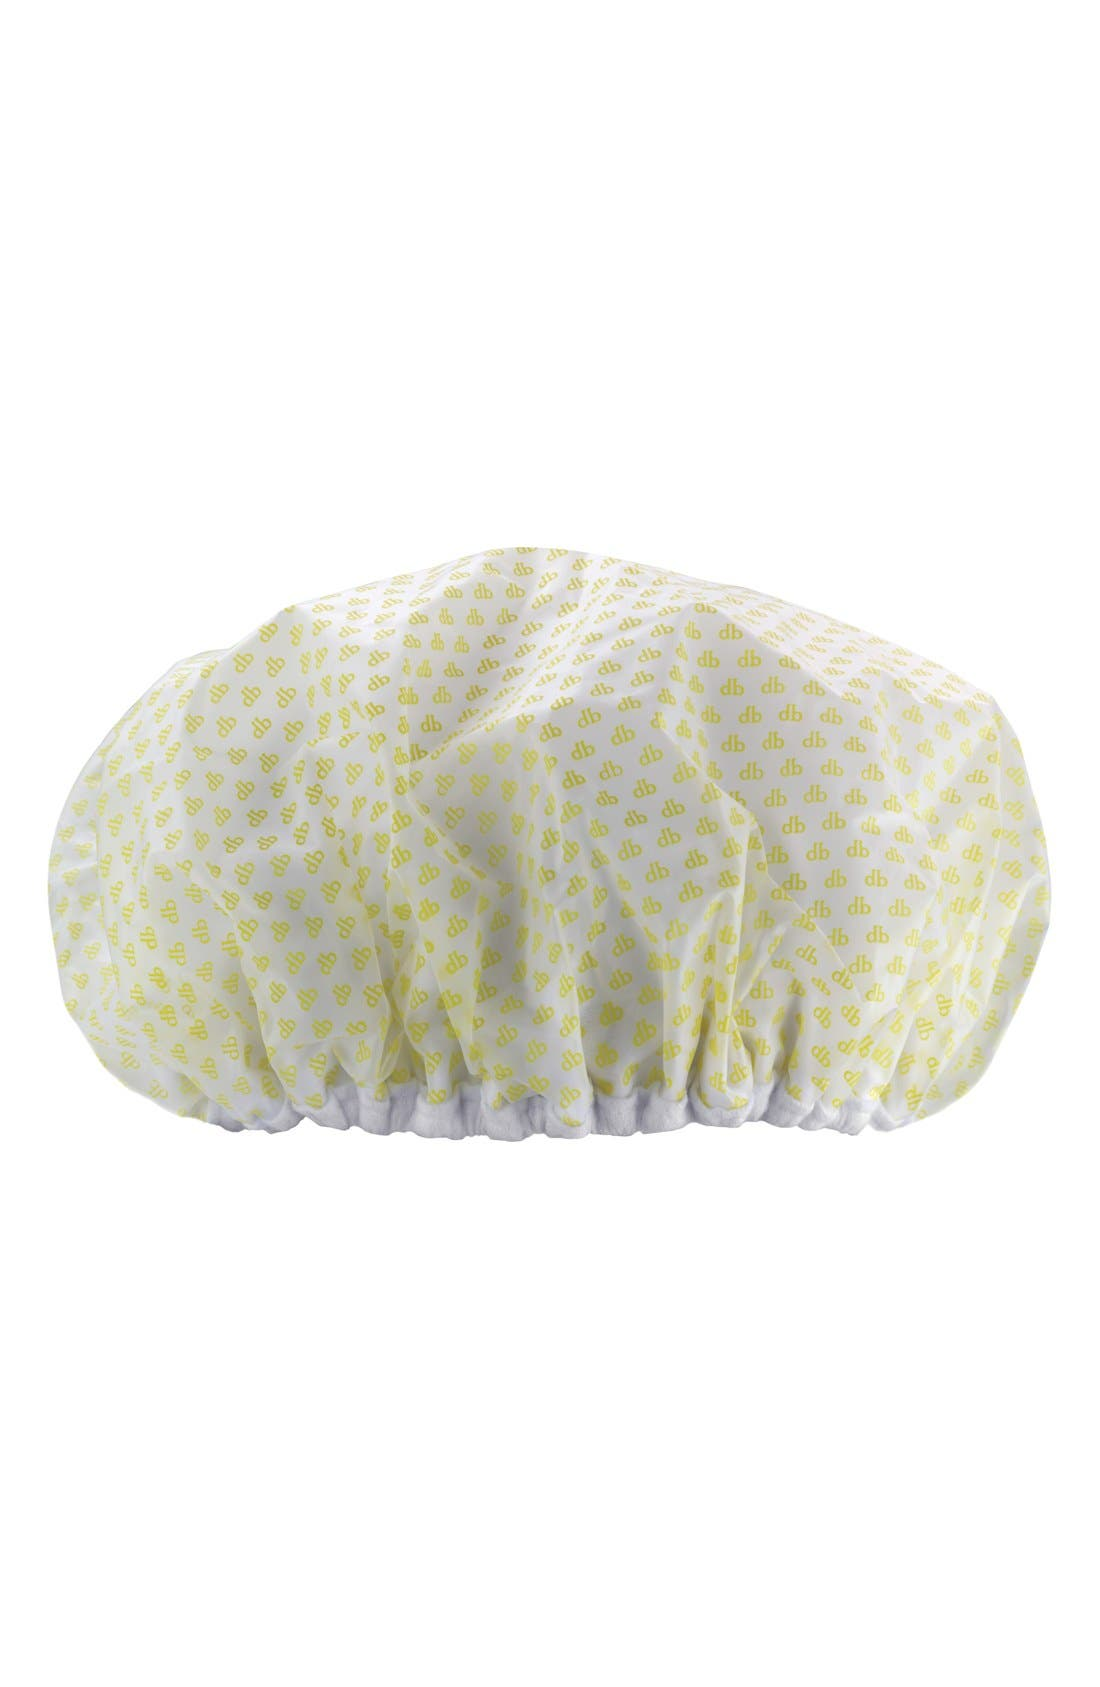 'The Morning After' Shower Cap,                         Main,                         color, NO COLOR